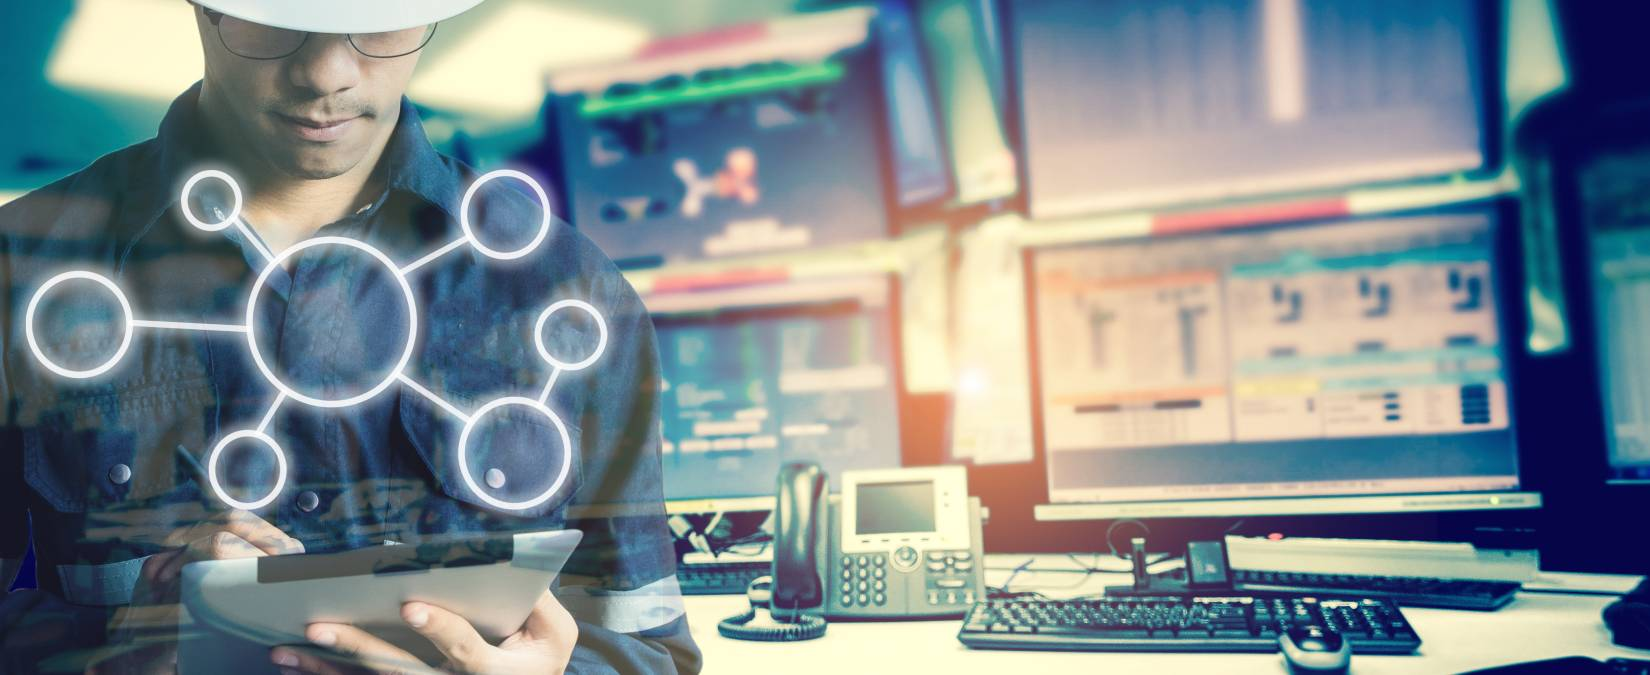 Predictive Maintenance: What It Is and Where It's Headed